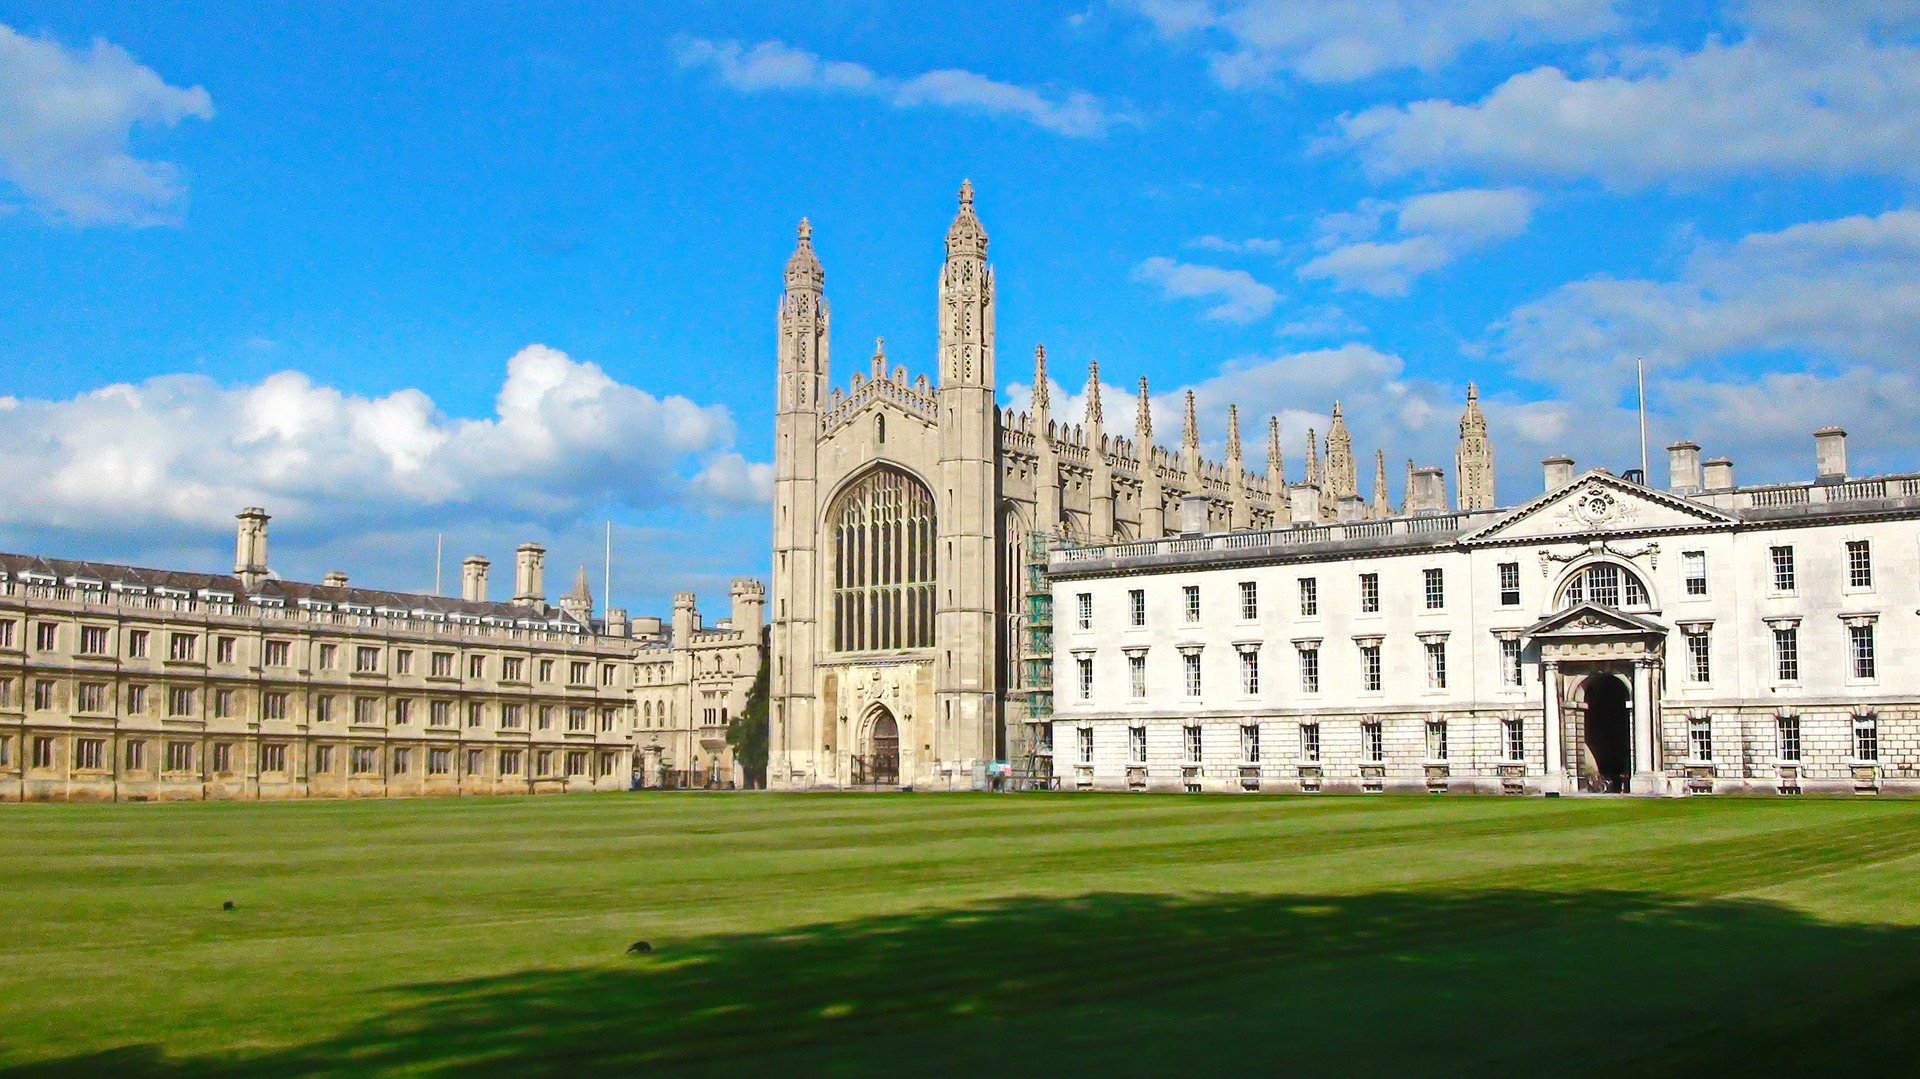 Thinking of applying to Cambridge?